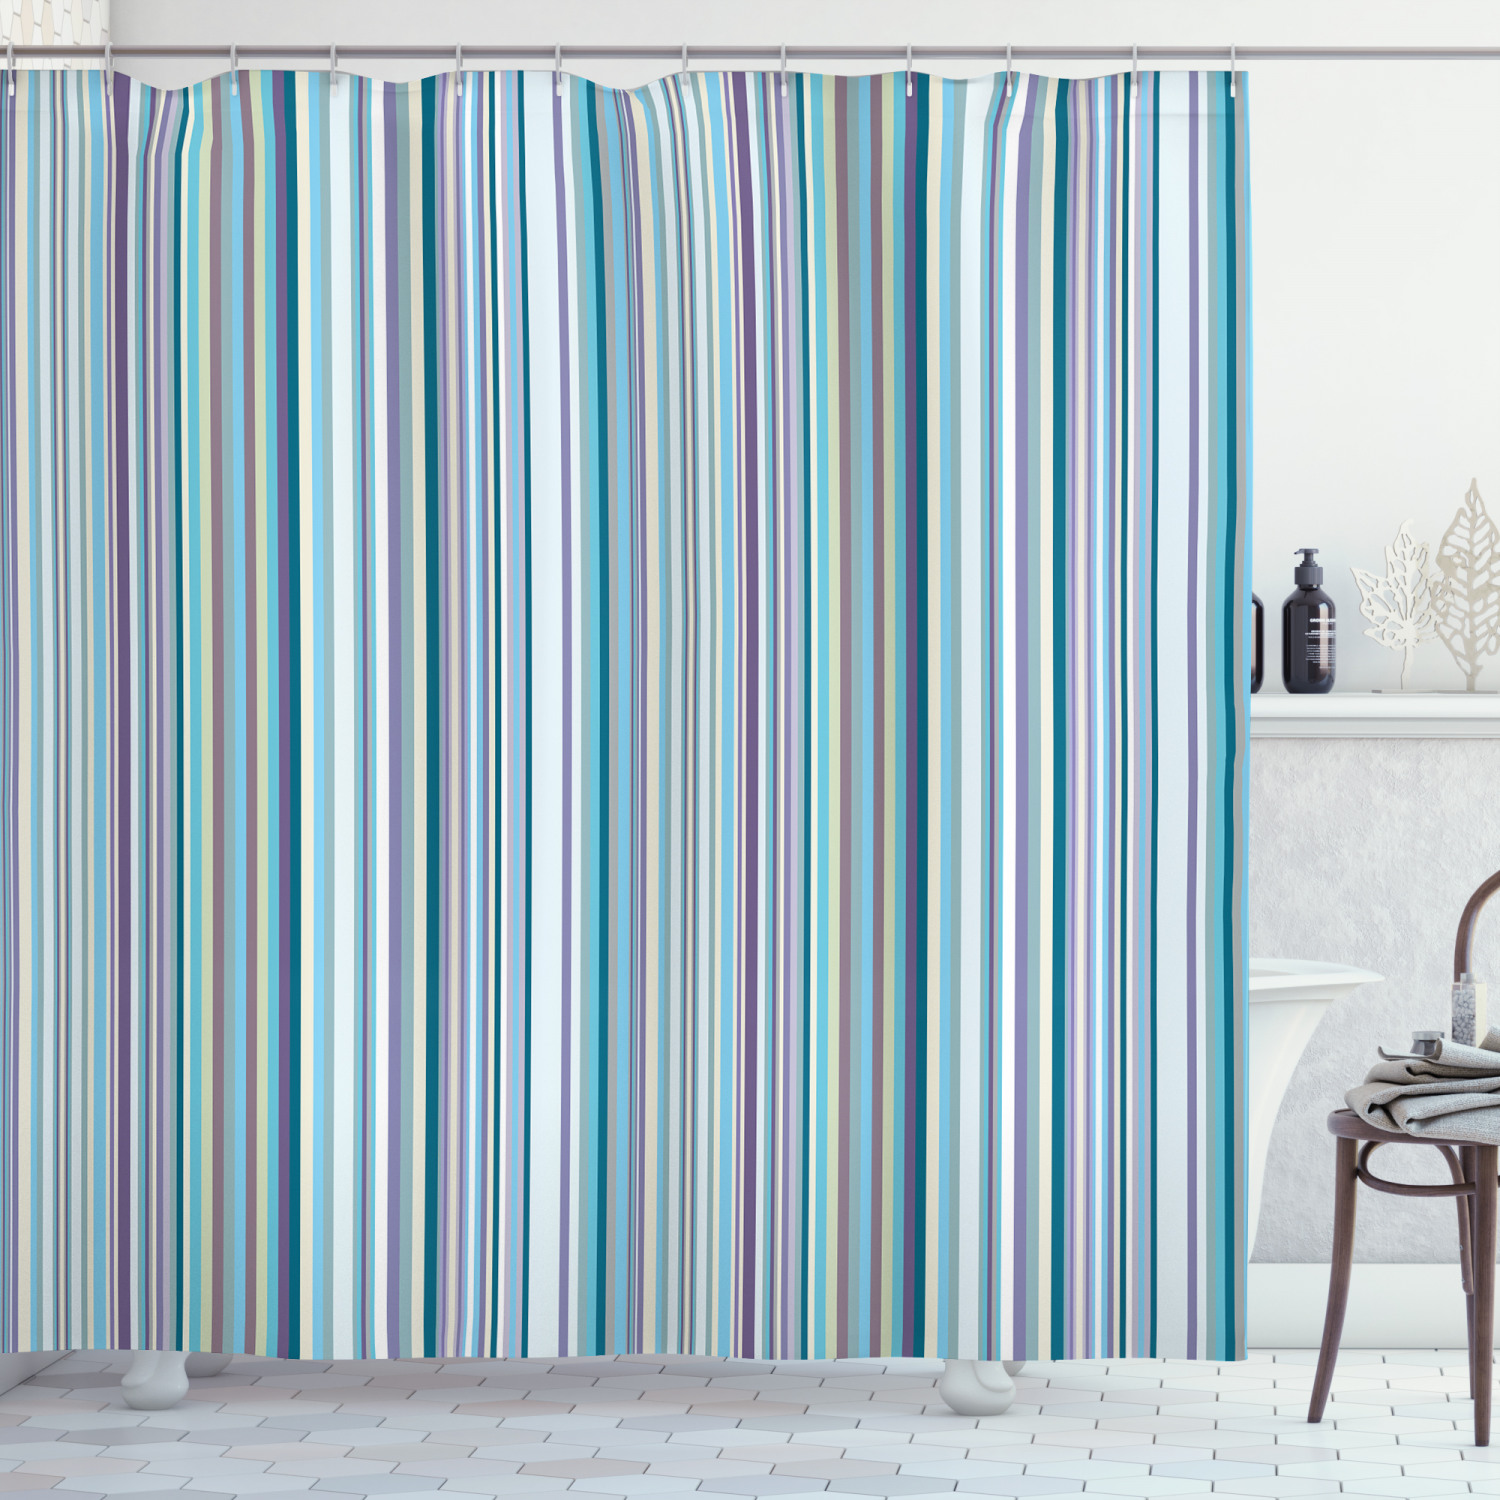 striped shower curtain blue purple teal aqua lavender colored vertical stripes geometric abstract vintage fabric bathroom set with hooks